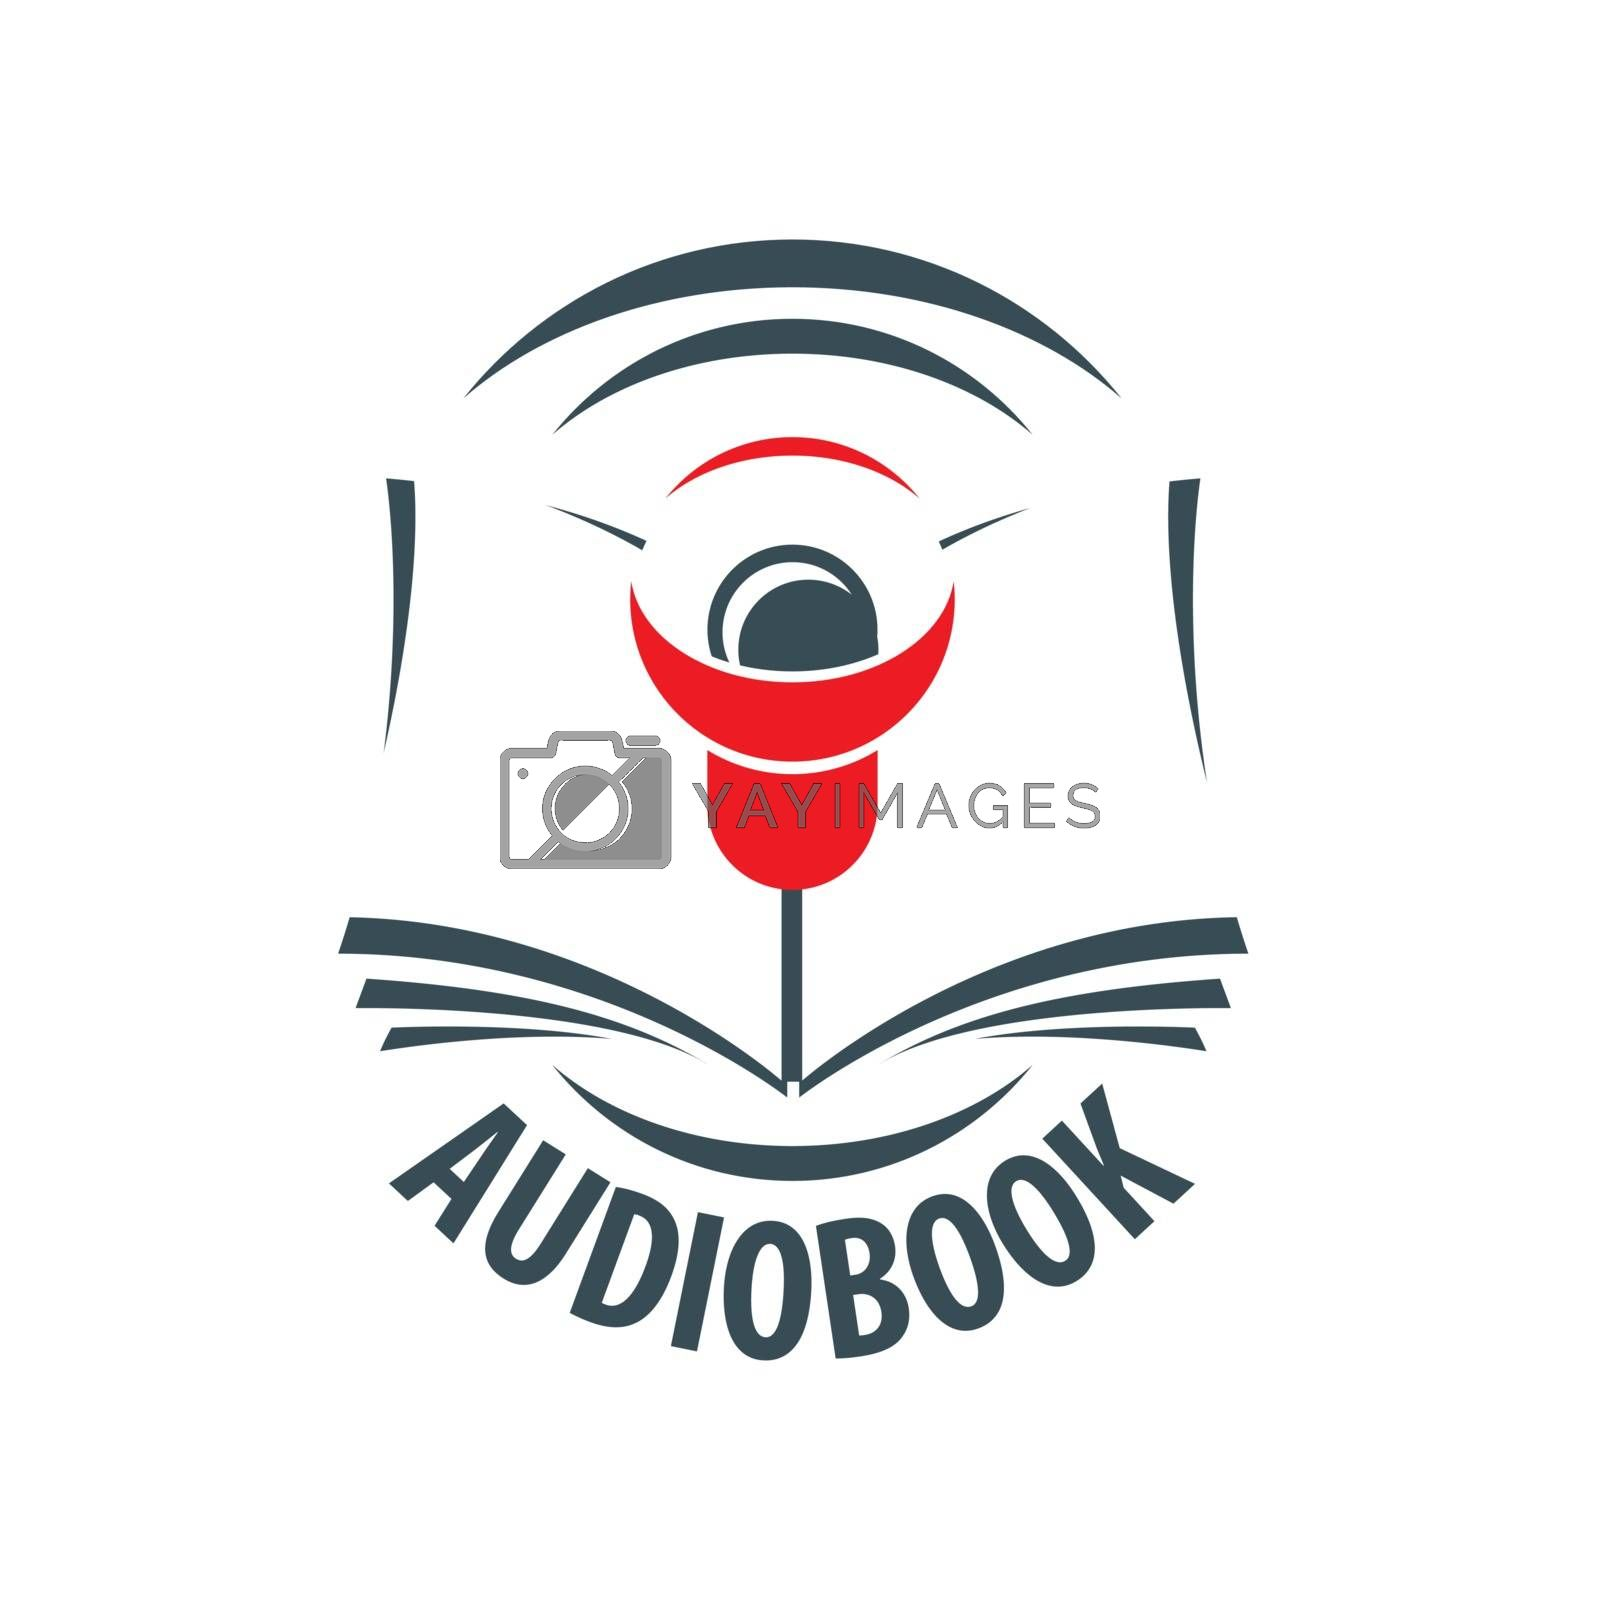 vector logo audiobook with a red speaker